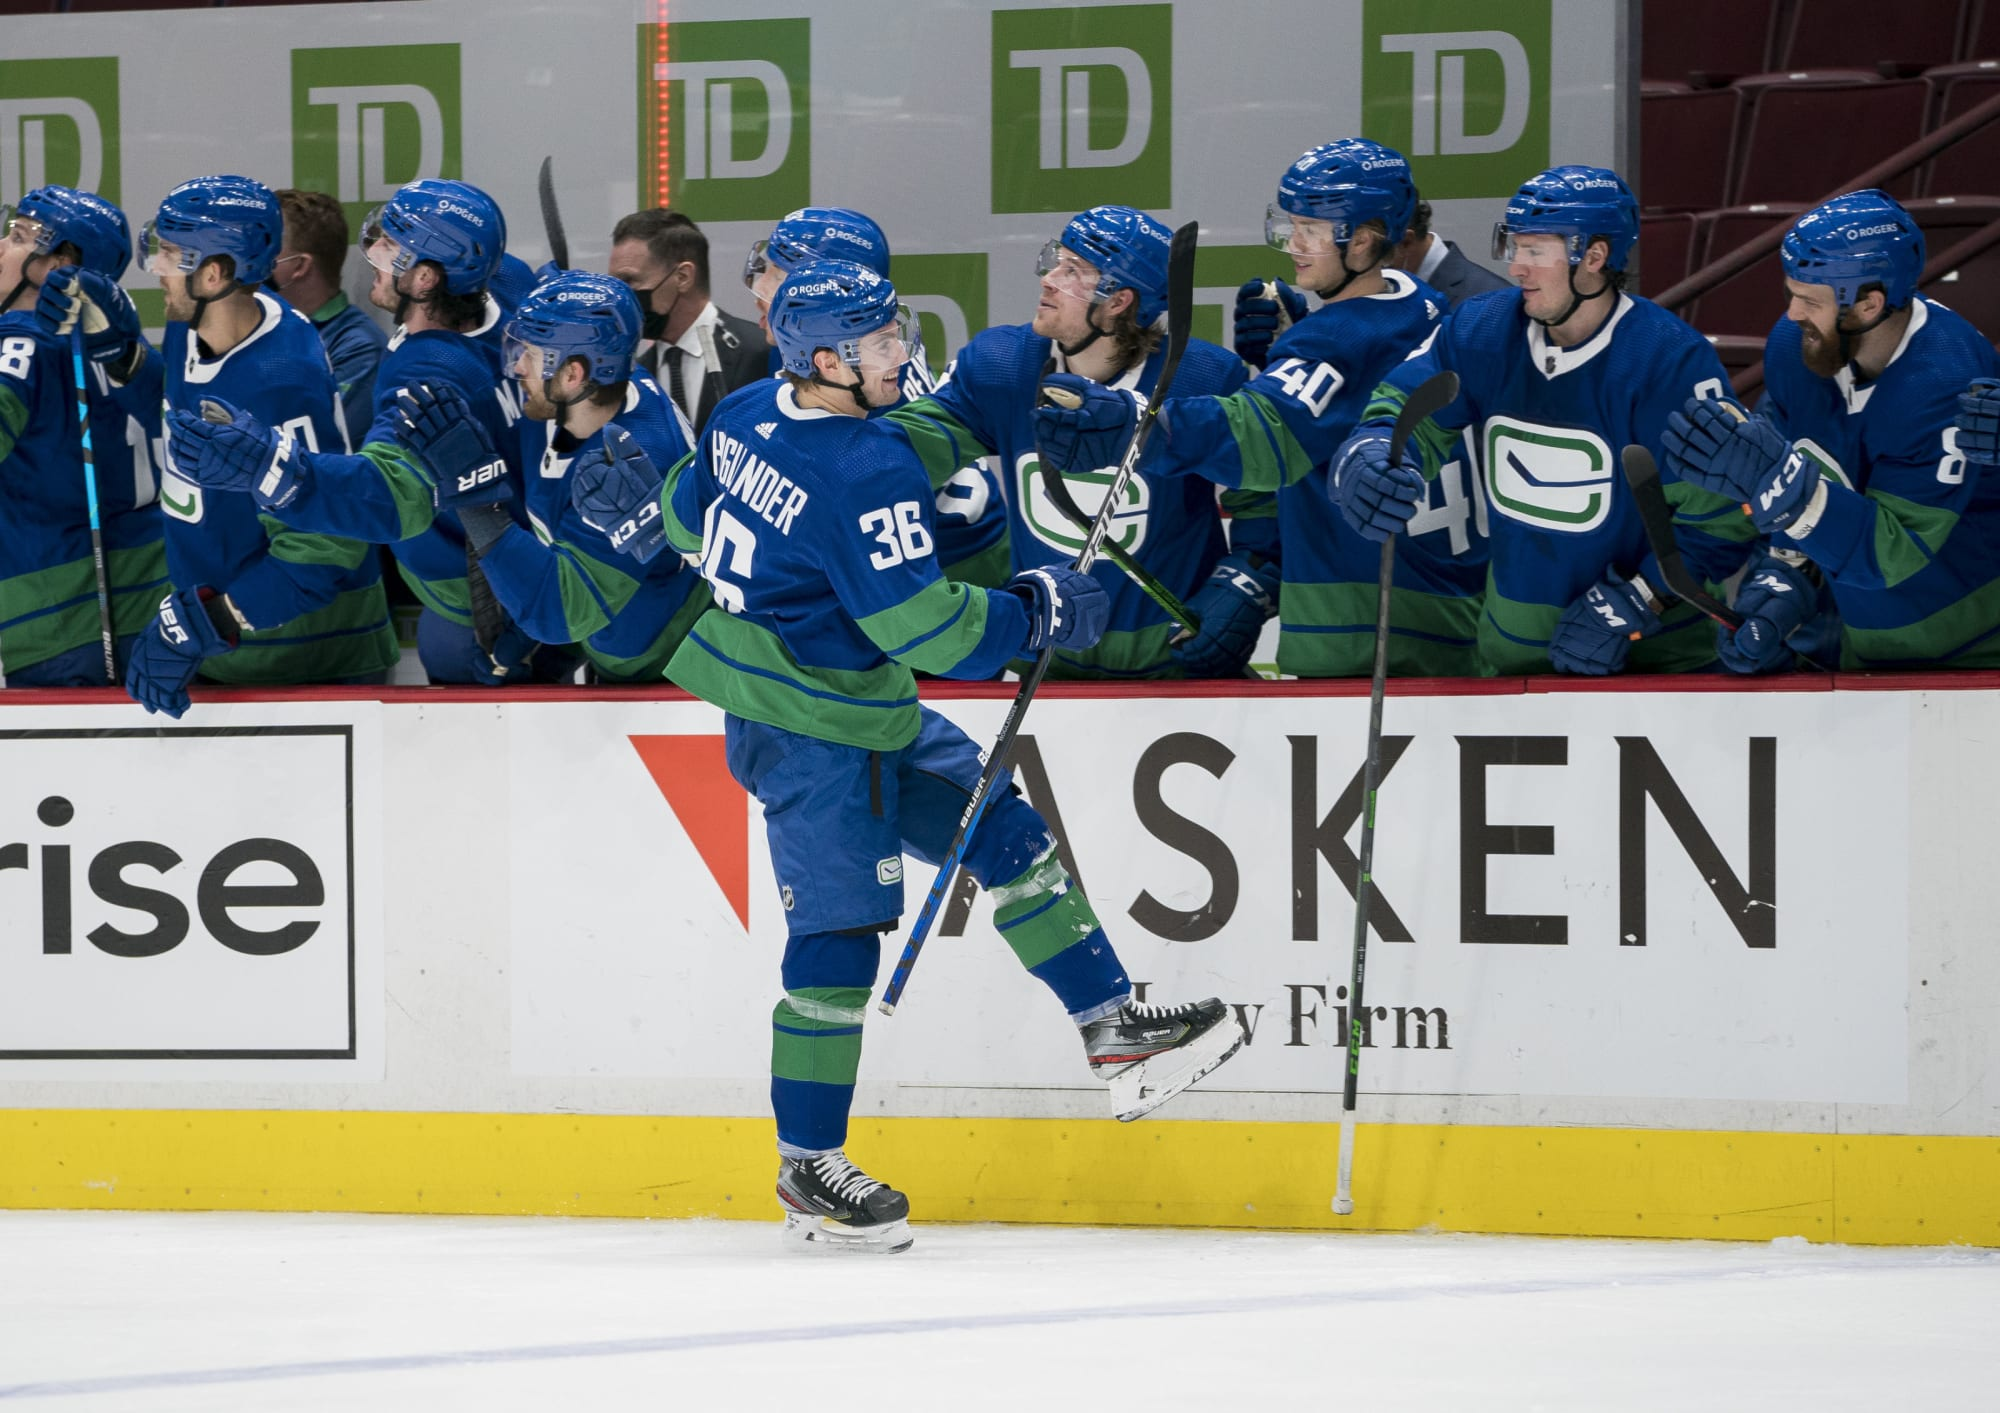 Canucks: 3 rookies who are playing above expectations this season